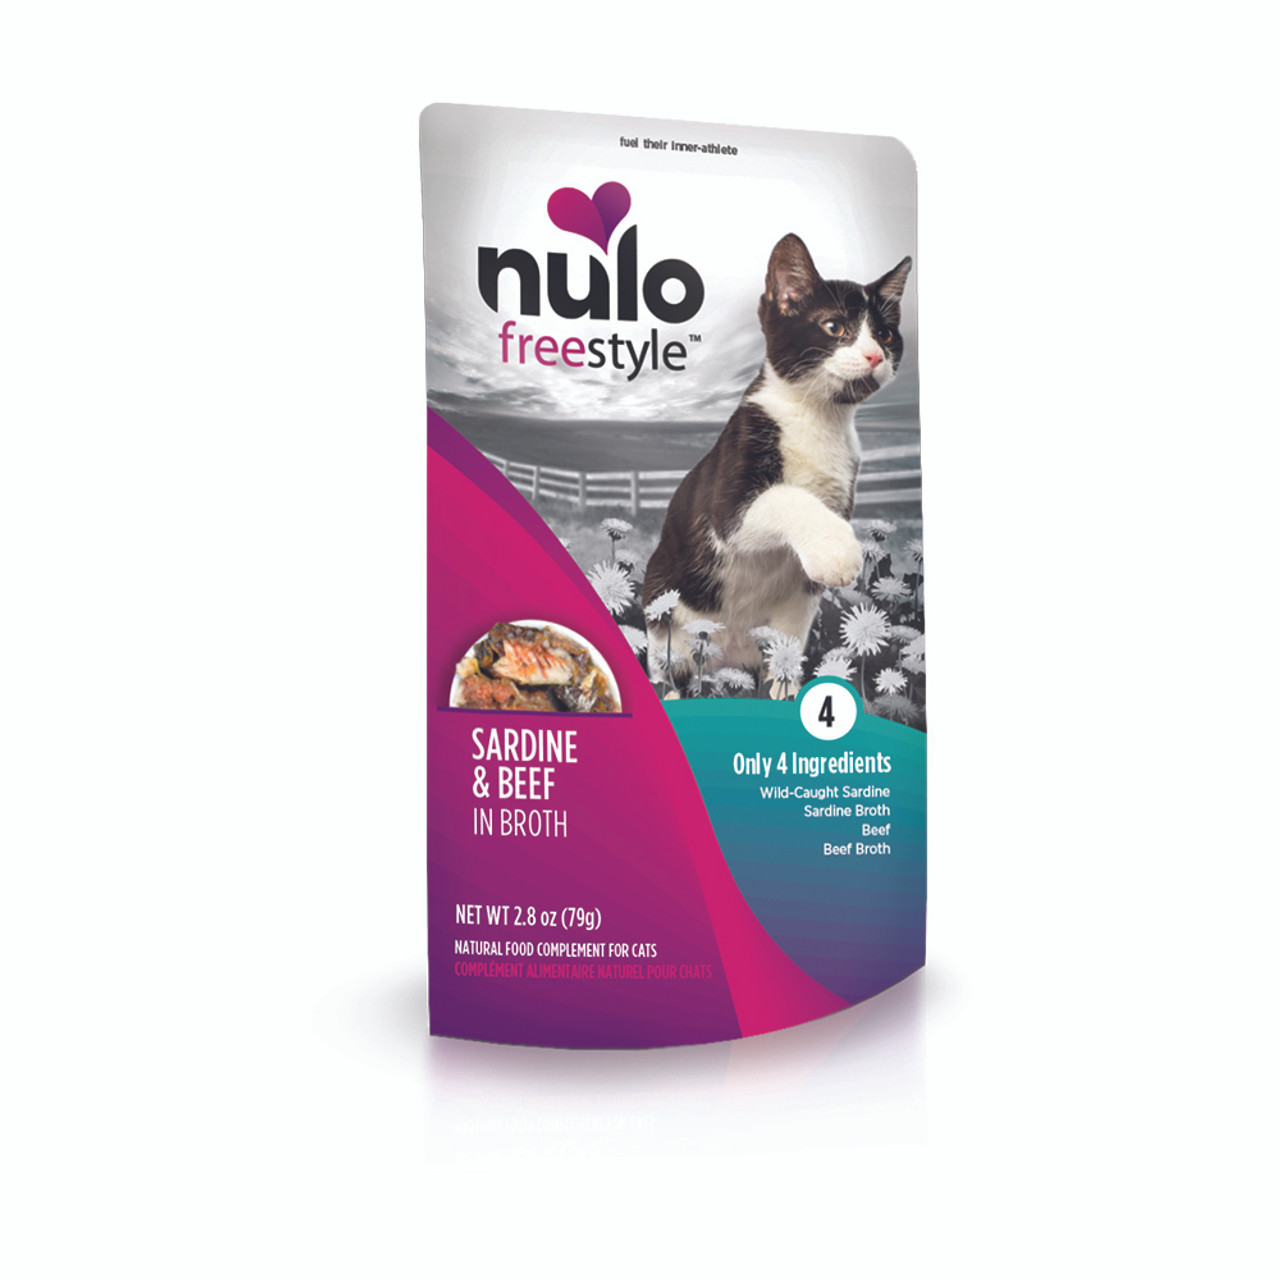 Nulo Freestyle Sardine & Beef in Broth Cat Food Pouch